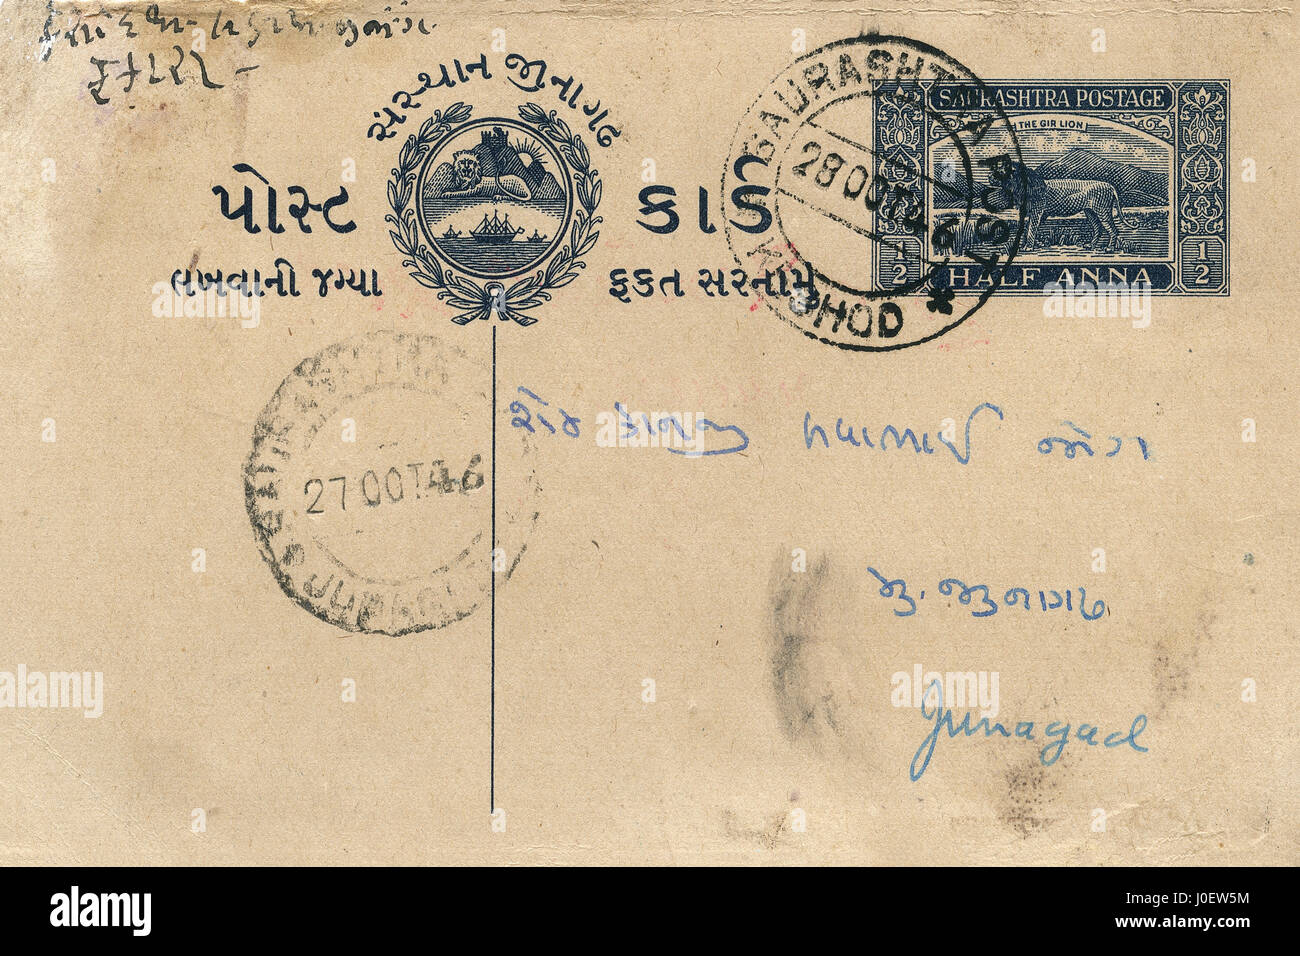 Postage stamps, india, asia - Stock Image